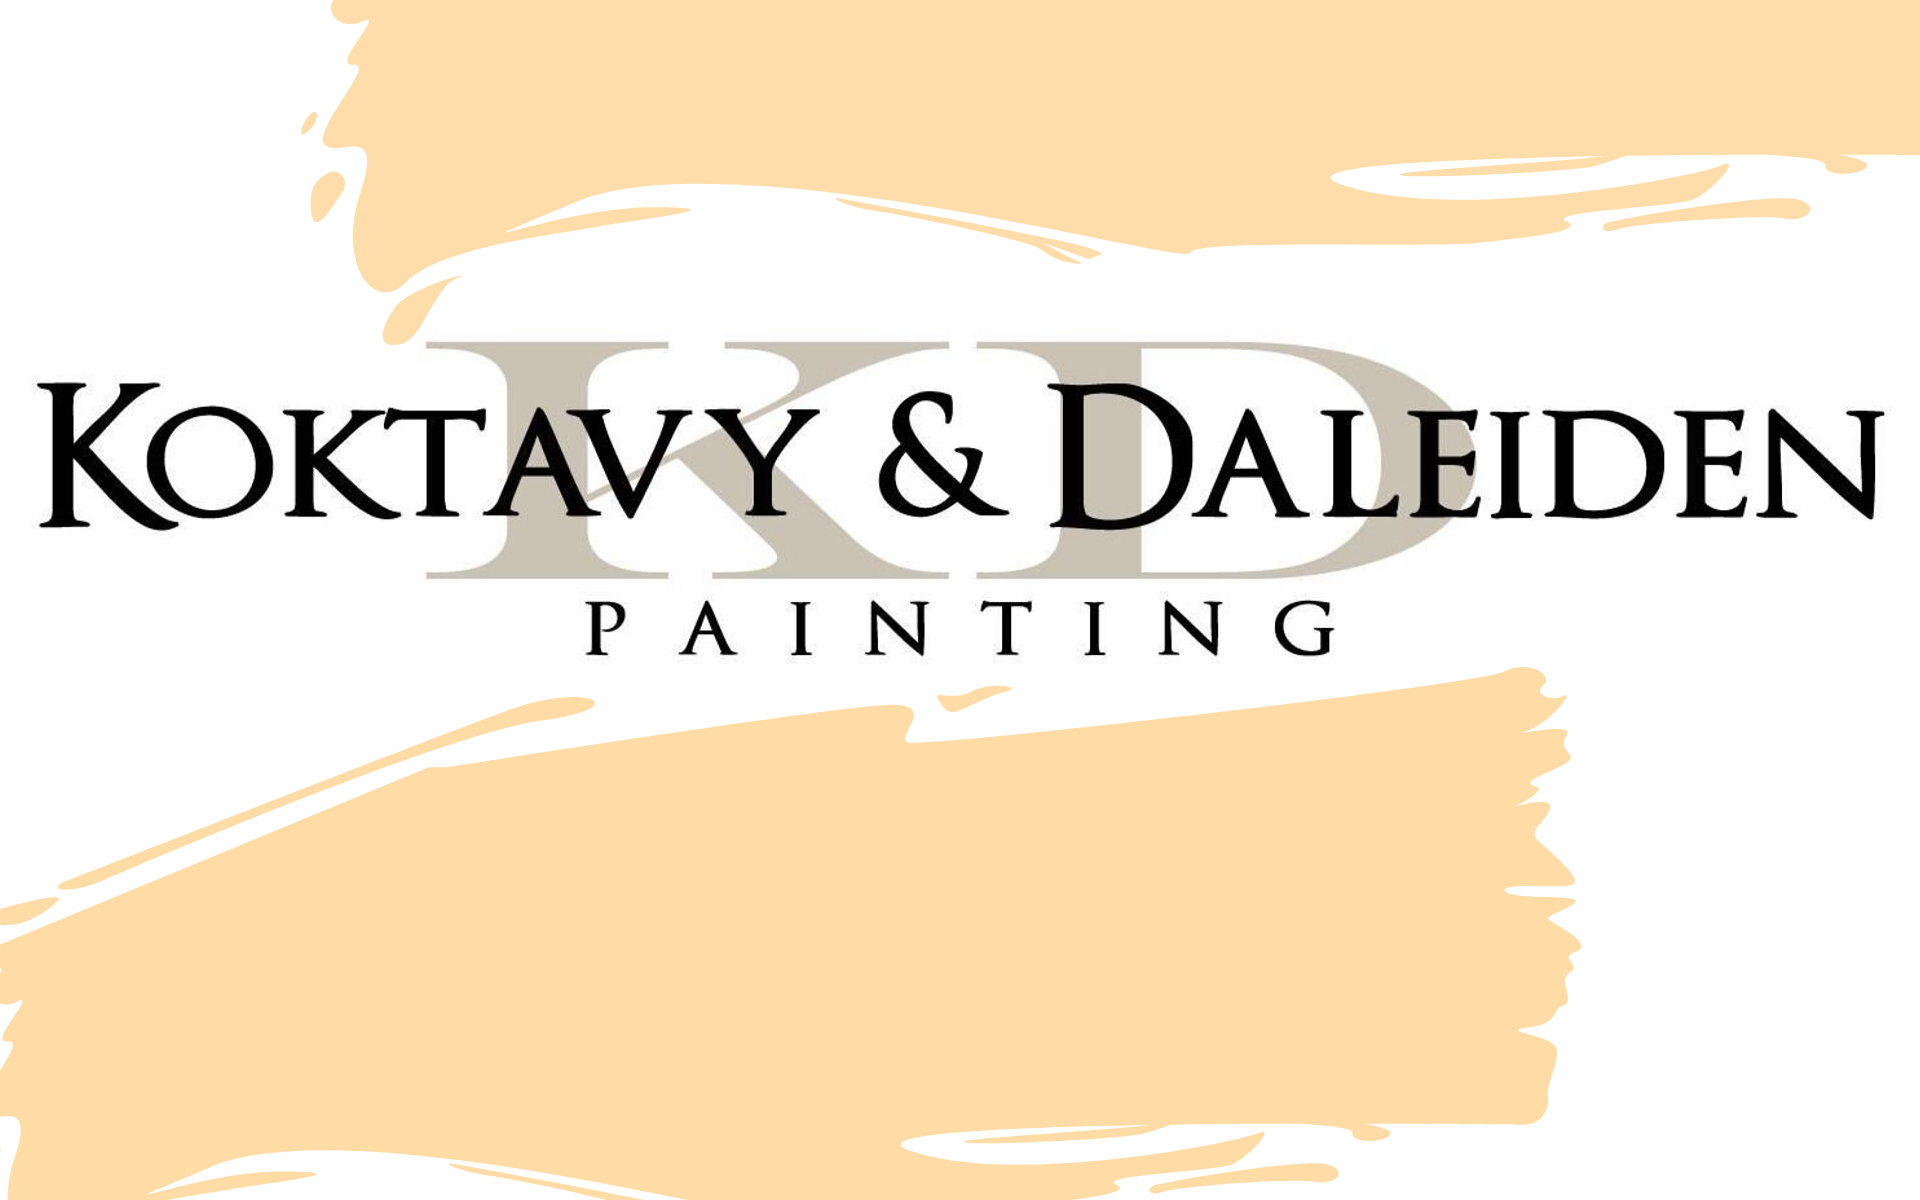 Ask the Tradesman: Koktavy & Daleiden Painting